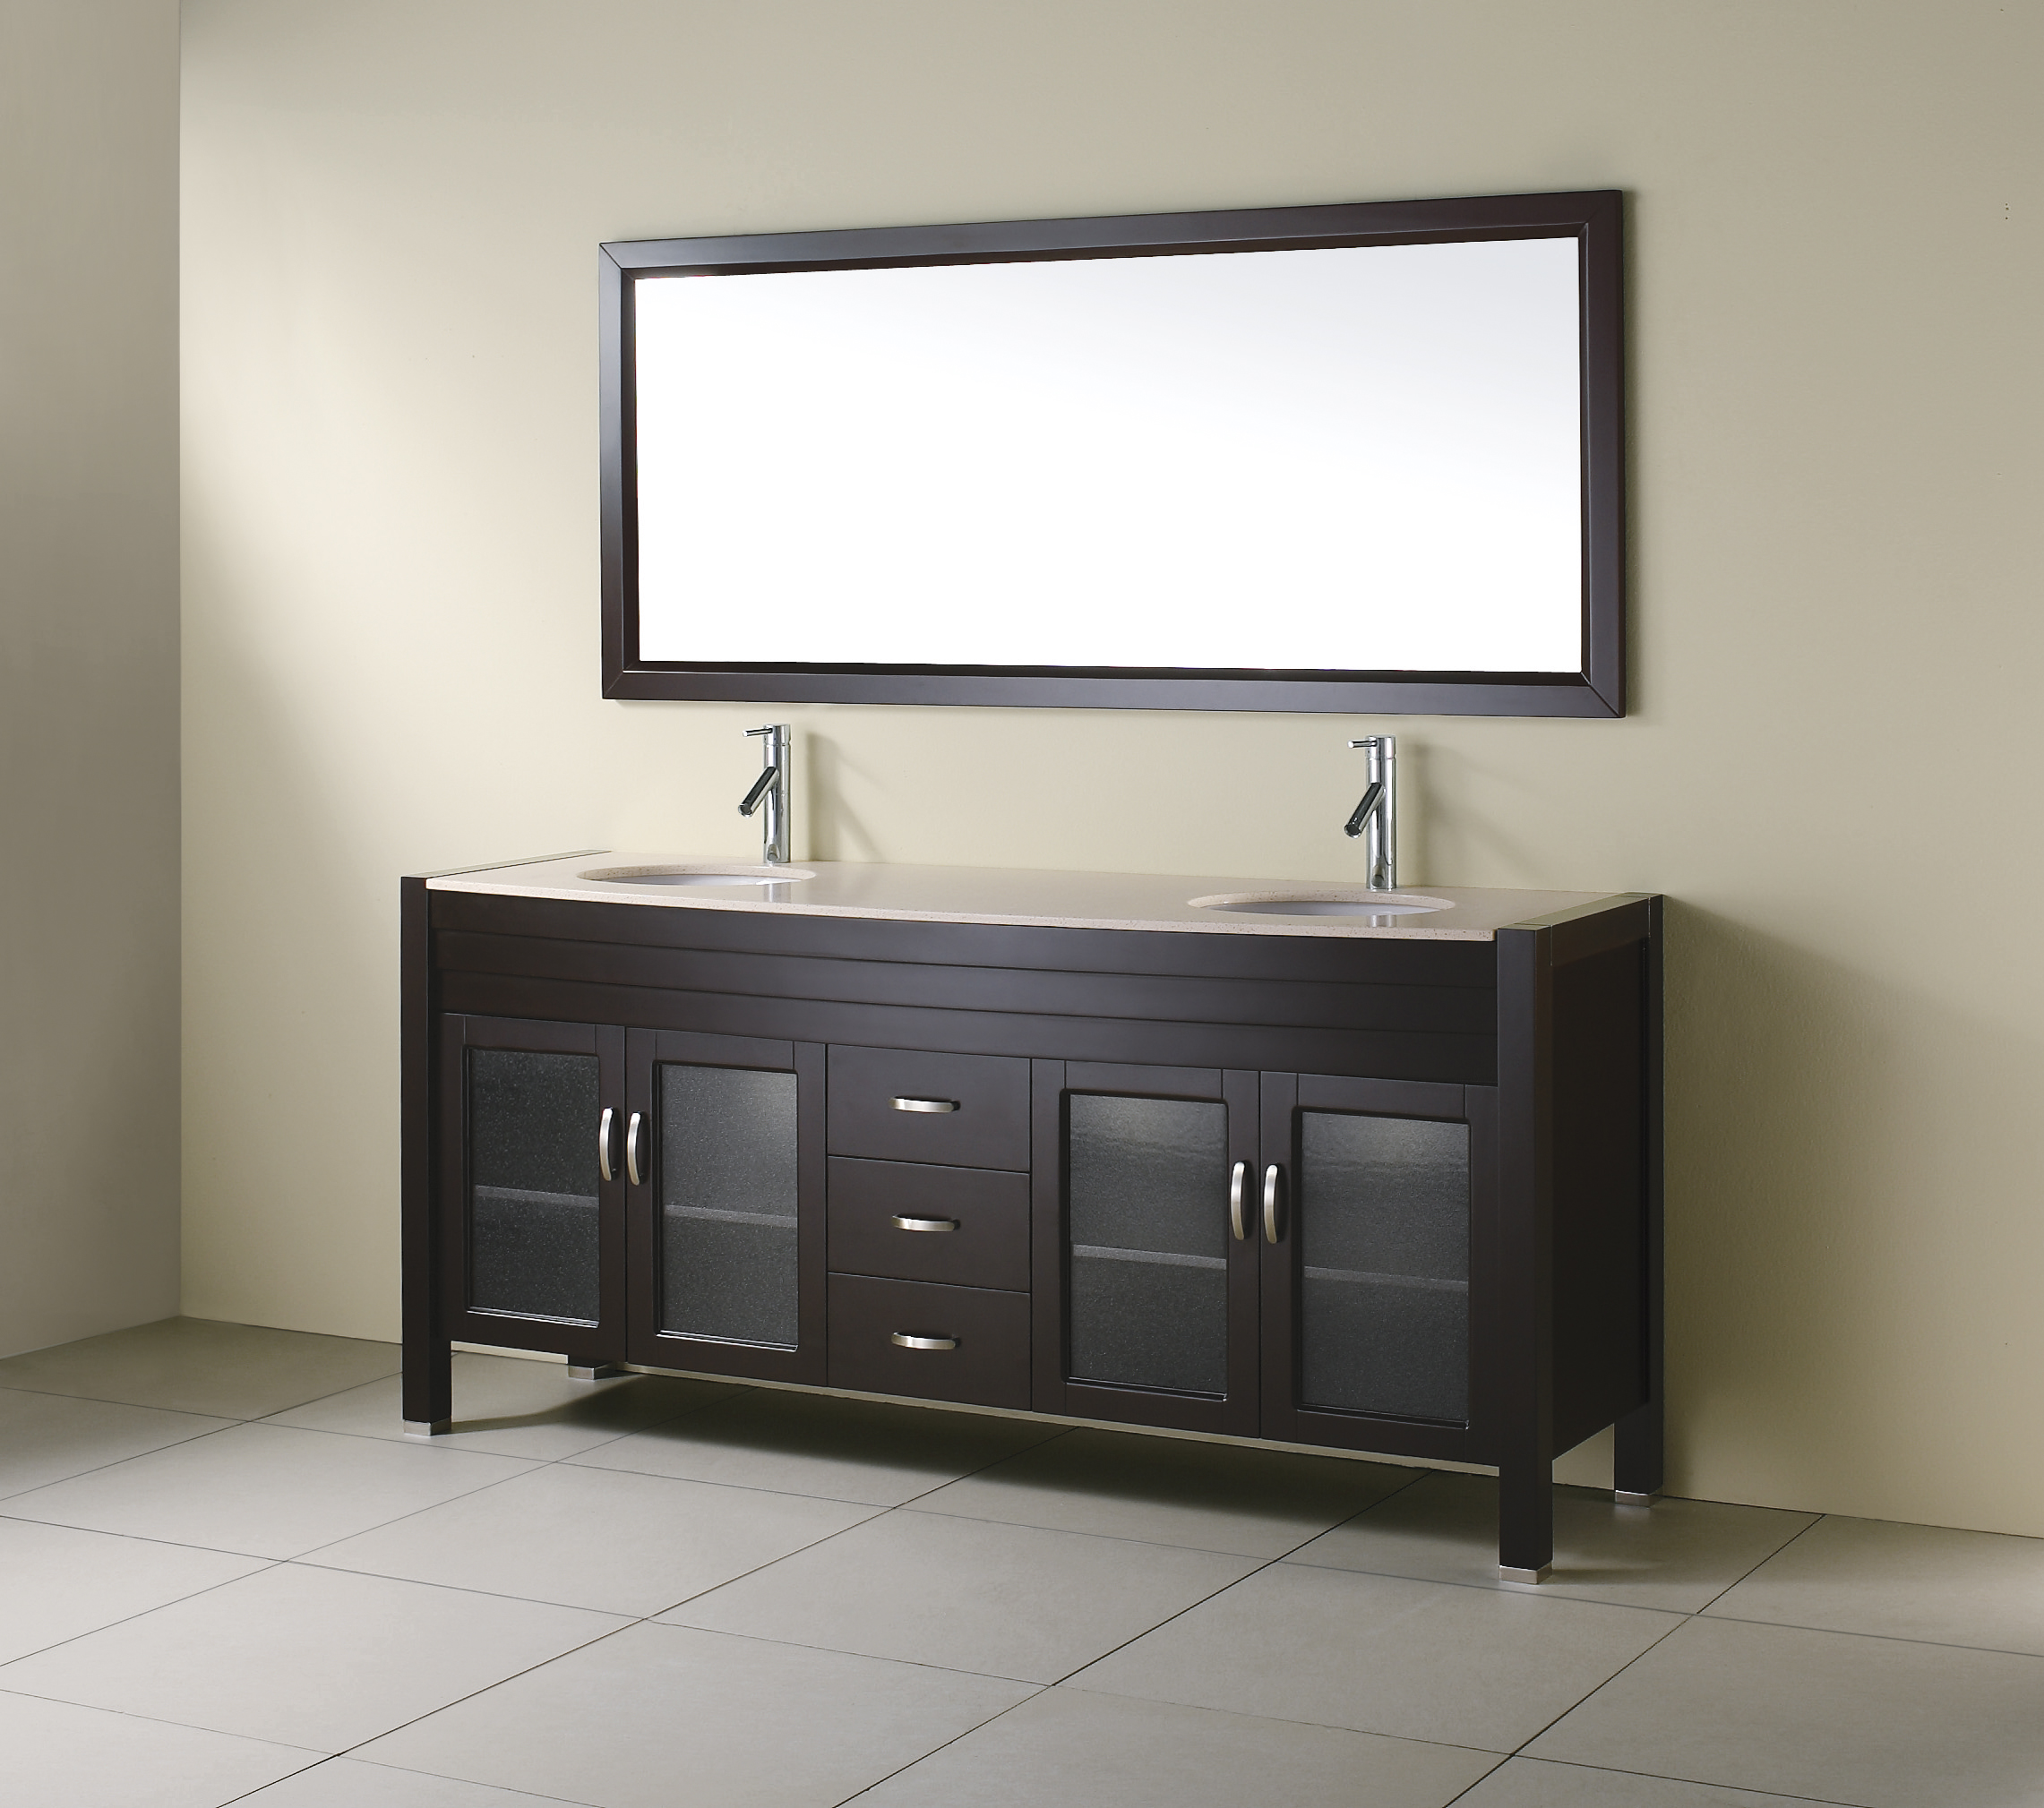 Modern Vanities For Bathrooms Bathroom Vanities A Complete Guide Cabinets And Sinks